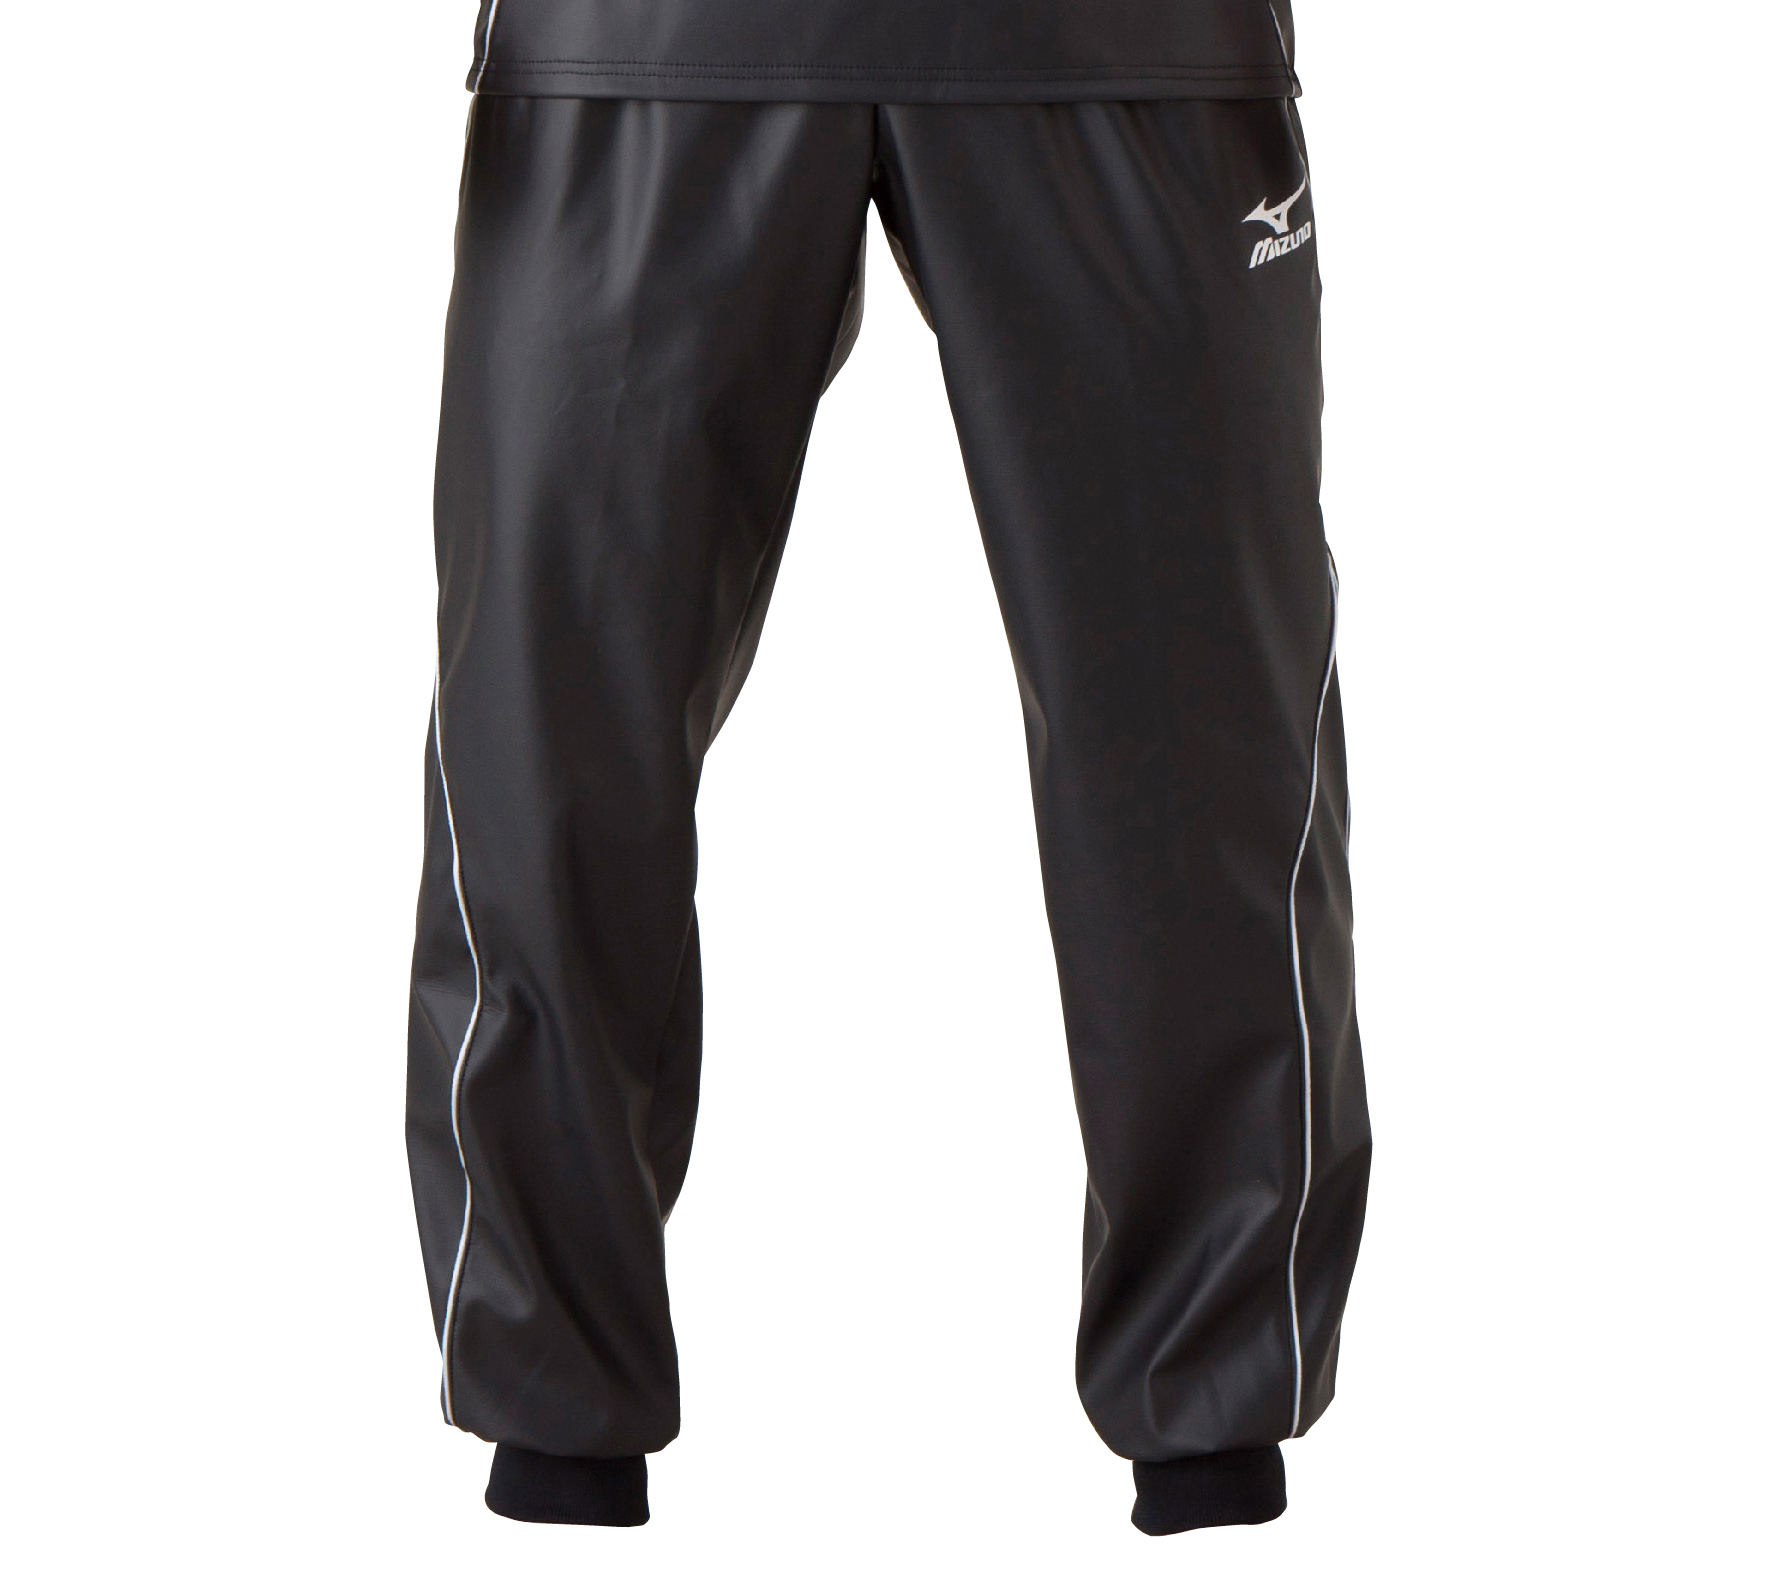 Sh 22jd5a9009 sudation pant